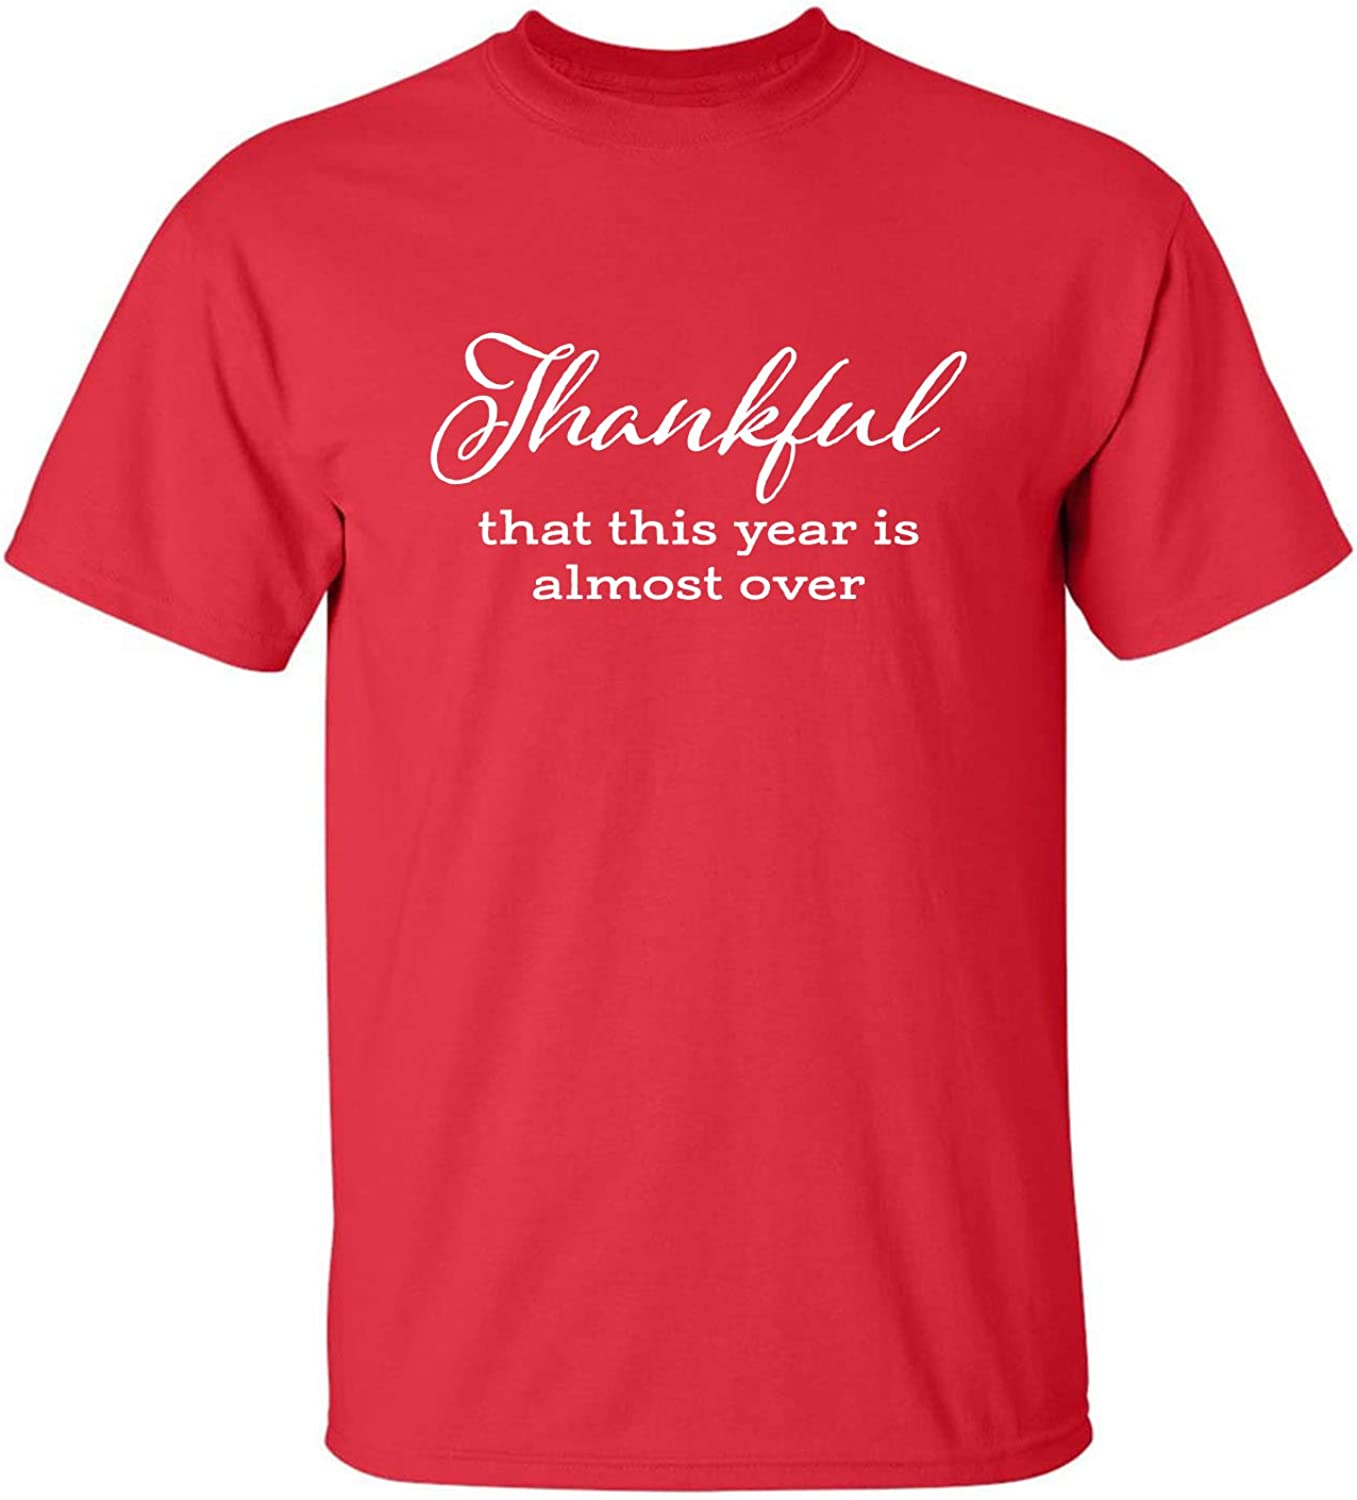 Thankful This Year is Almost Over Adult T-Shirt in Red - XXXX-Large